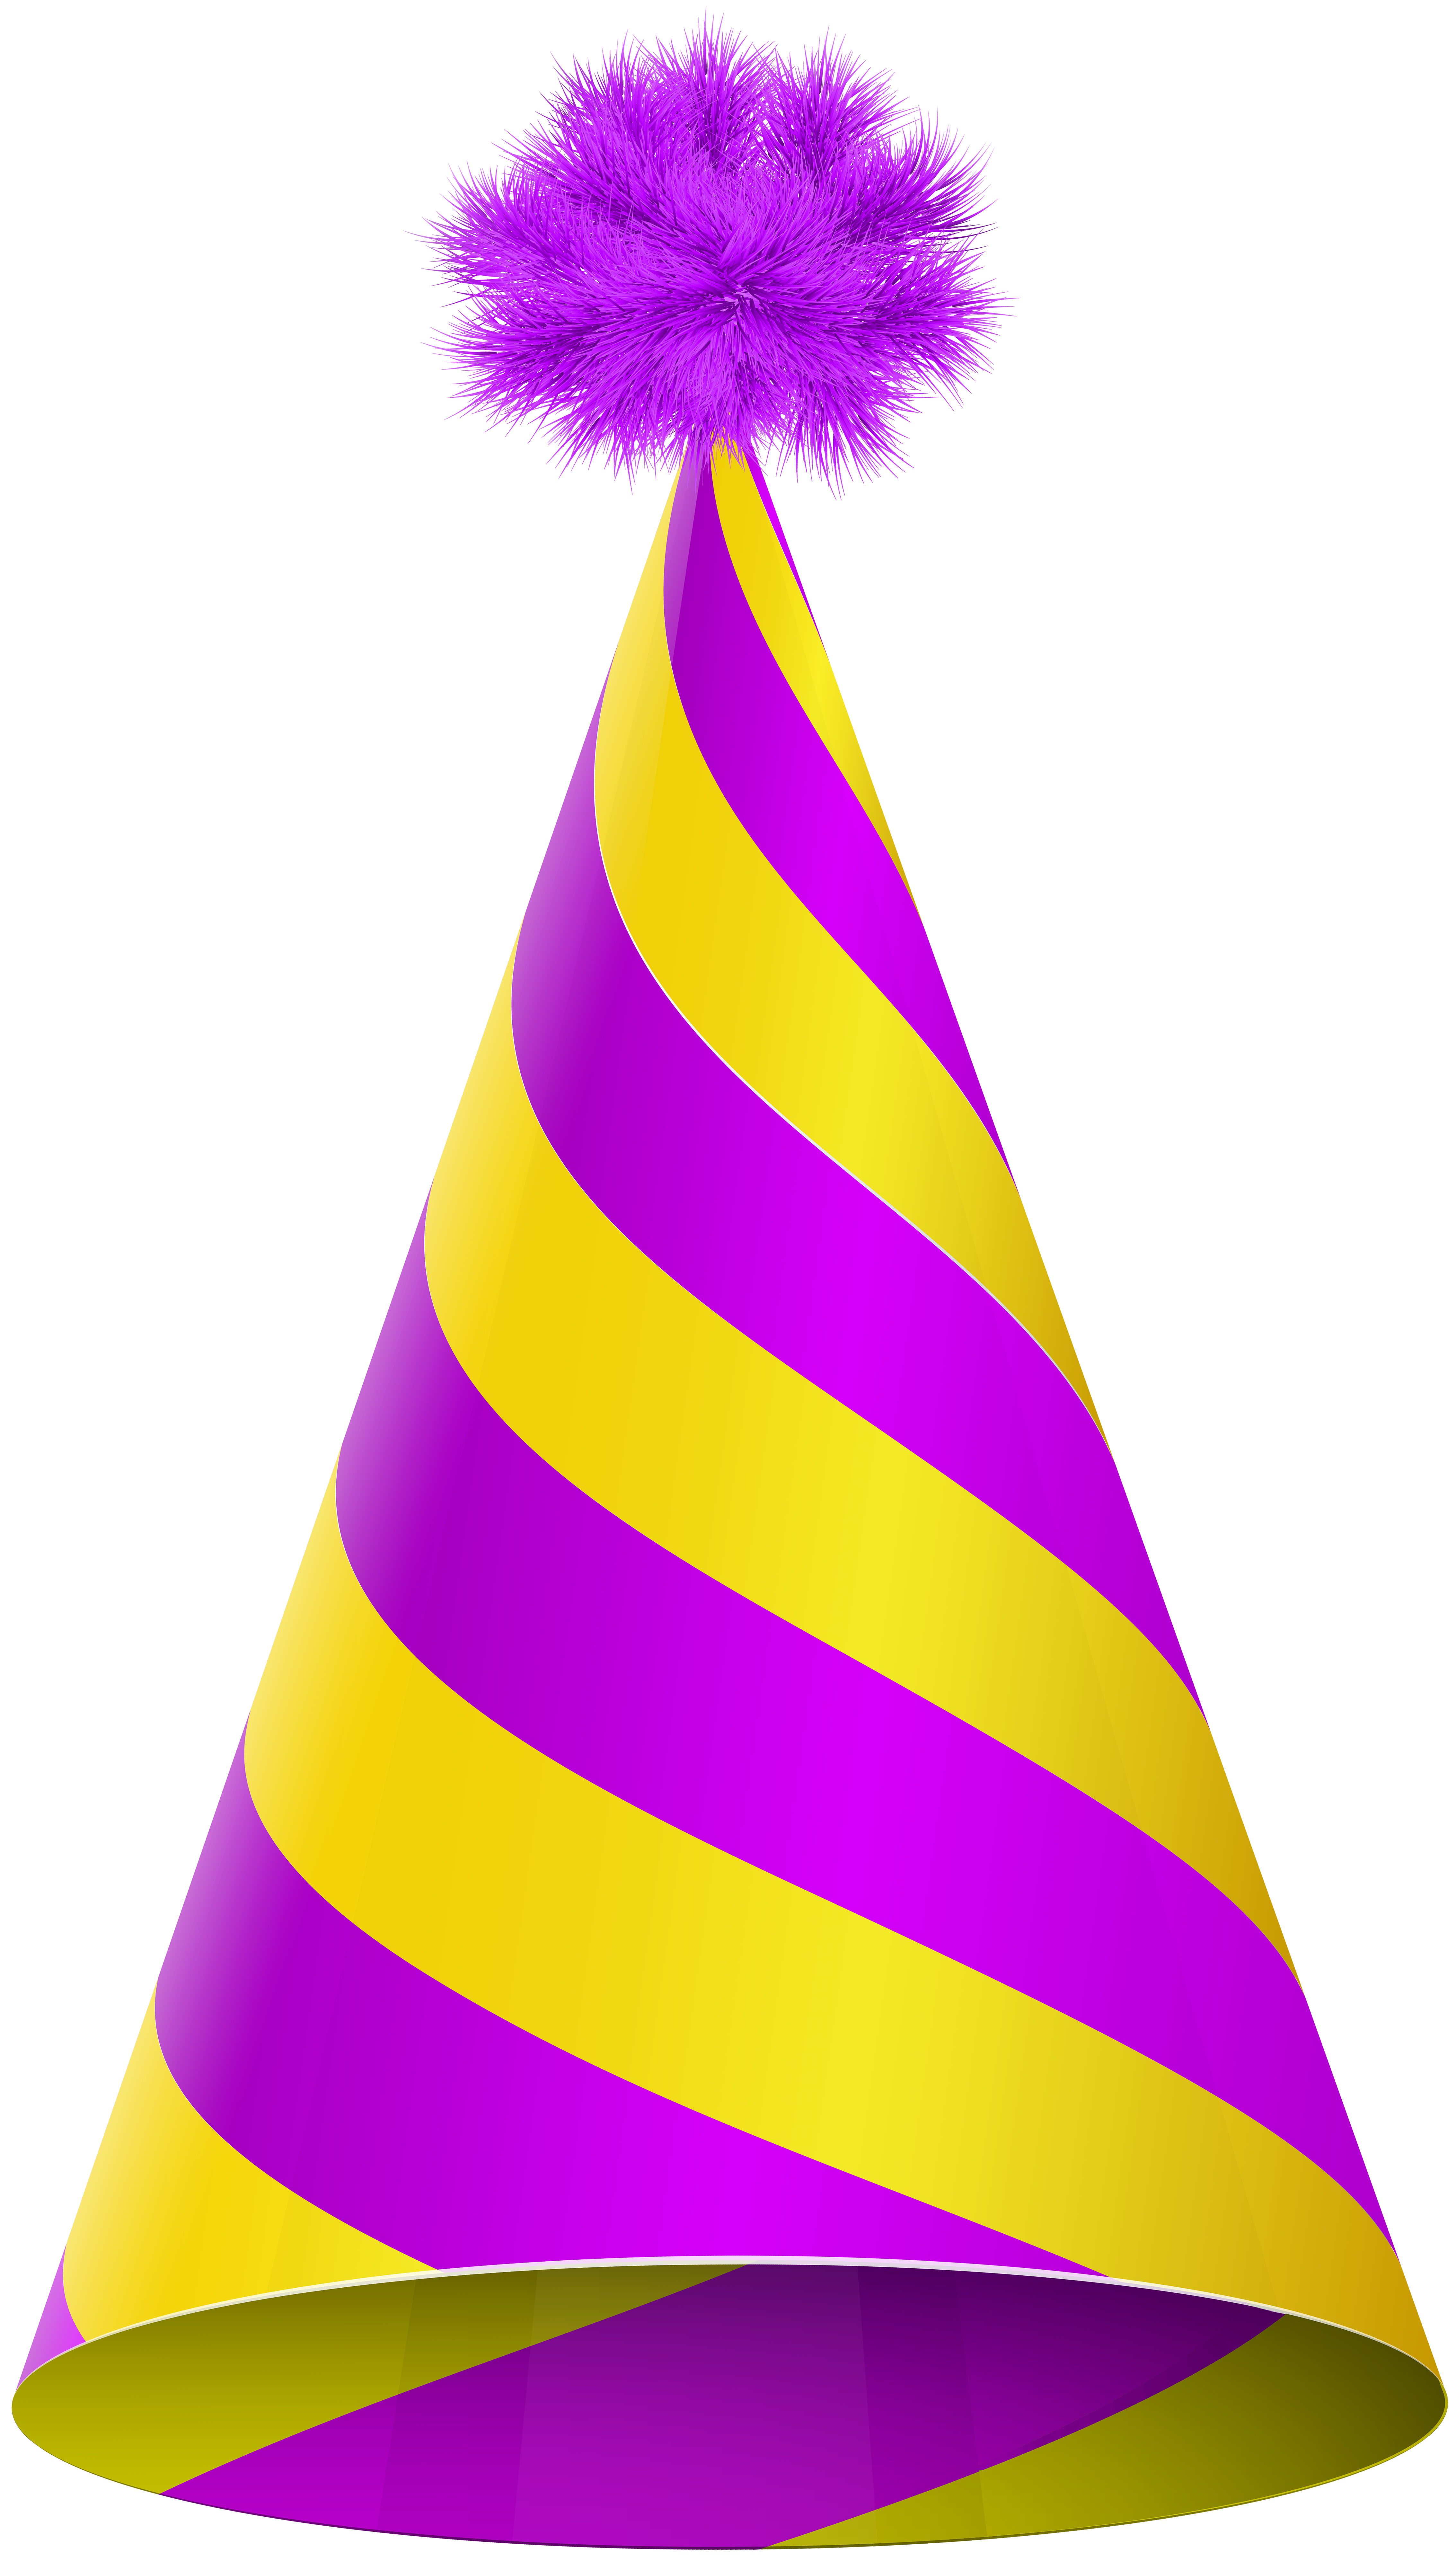 Party hat purple yellow transparent clip art image gallery.